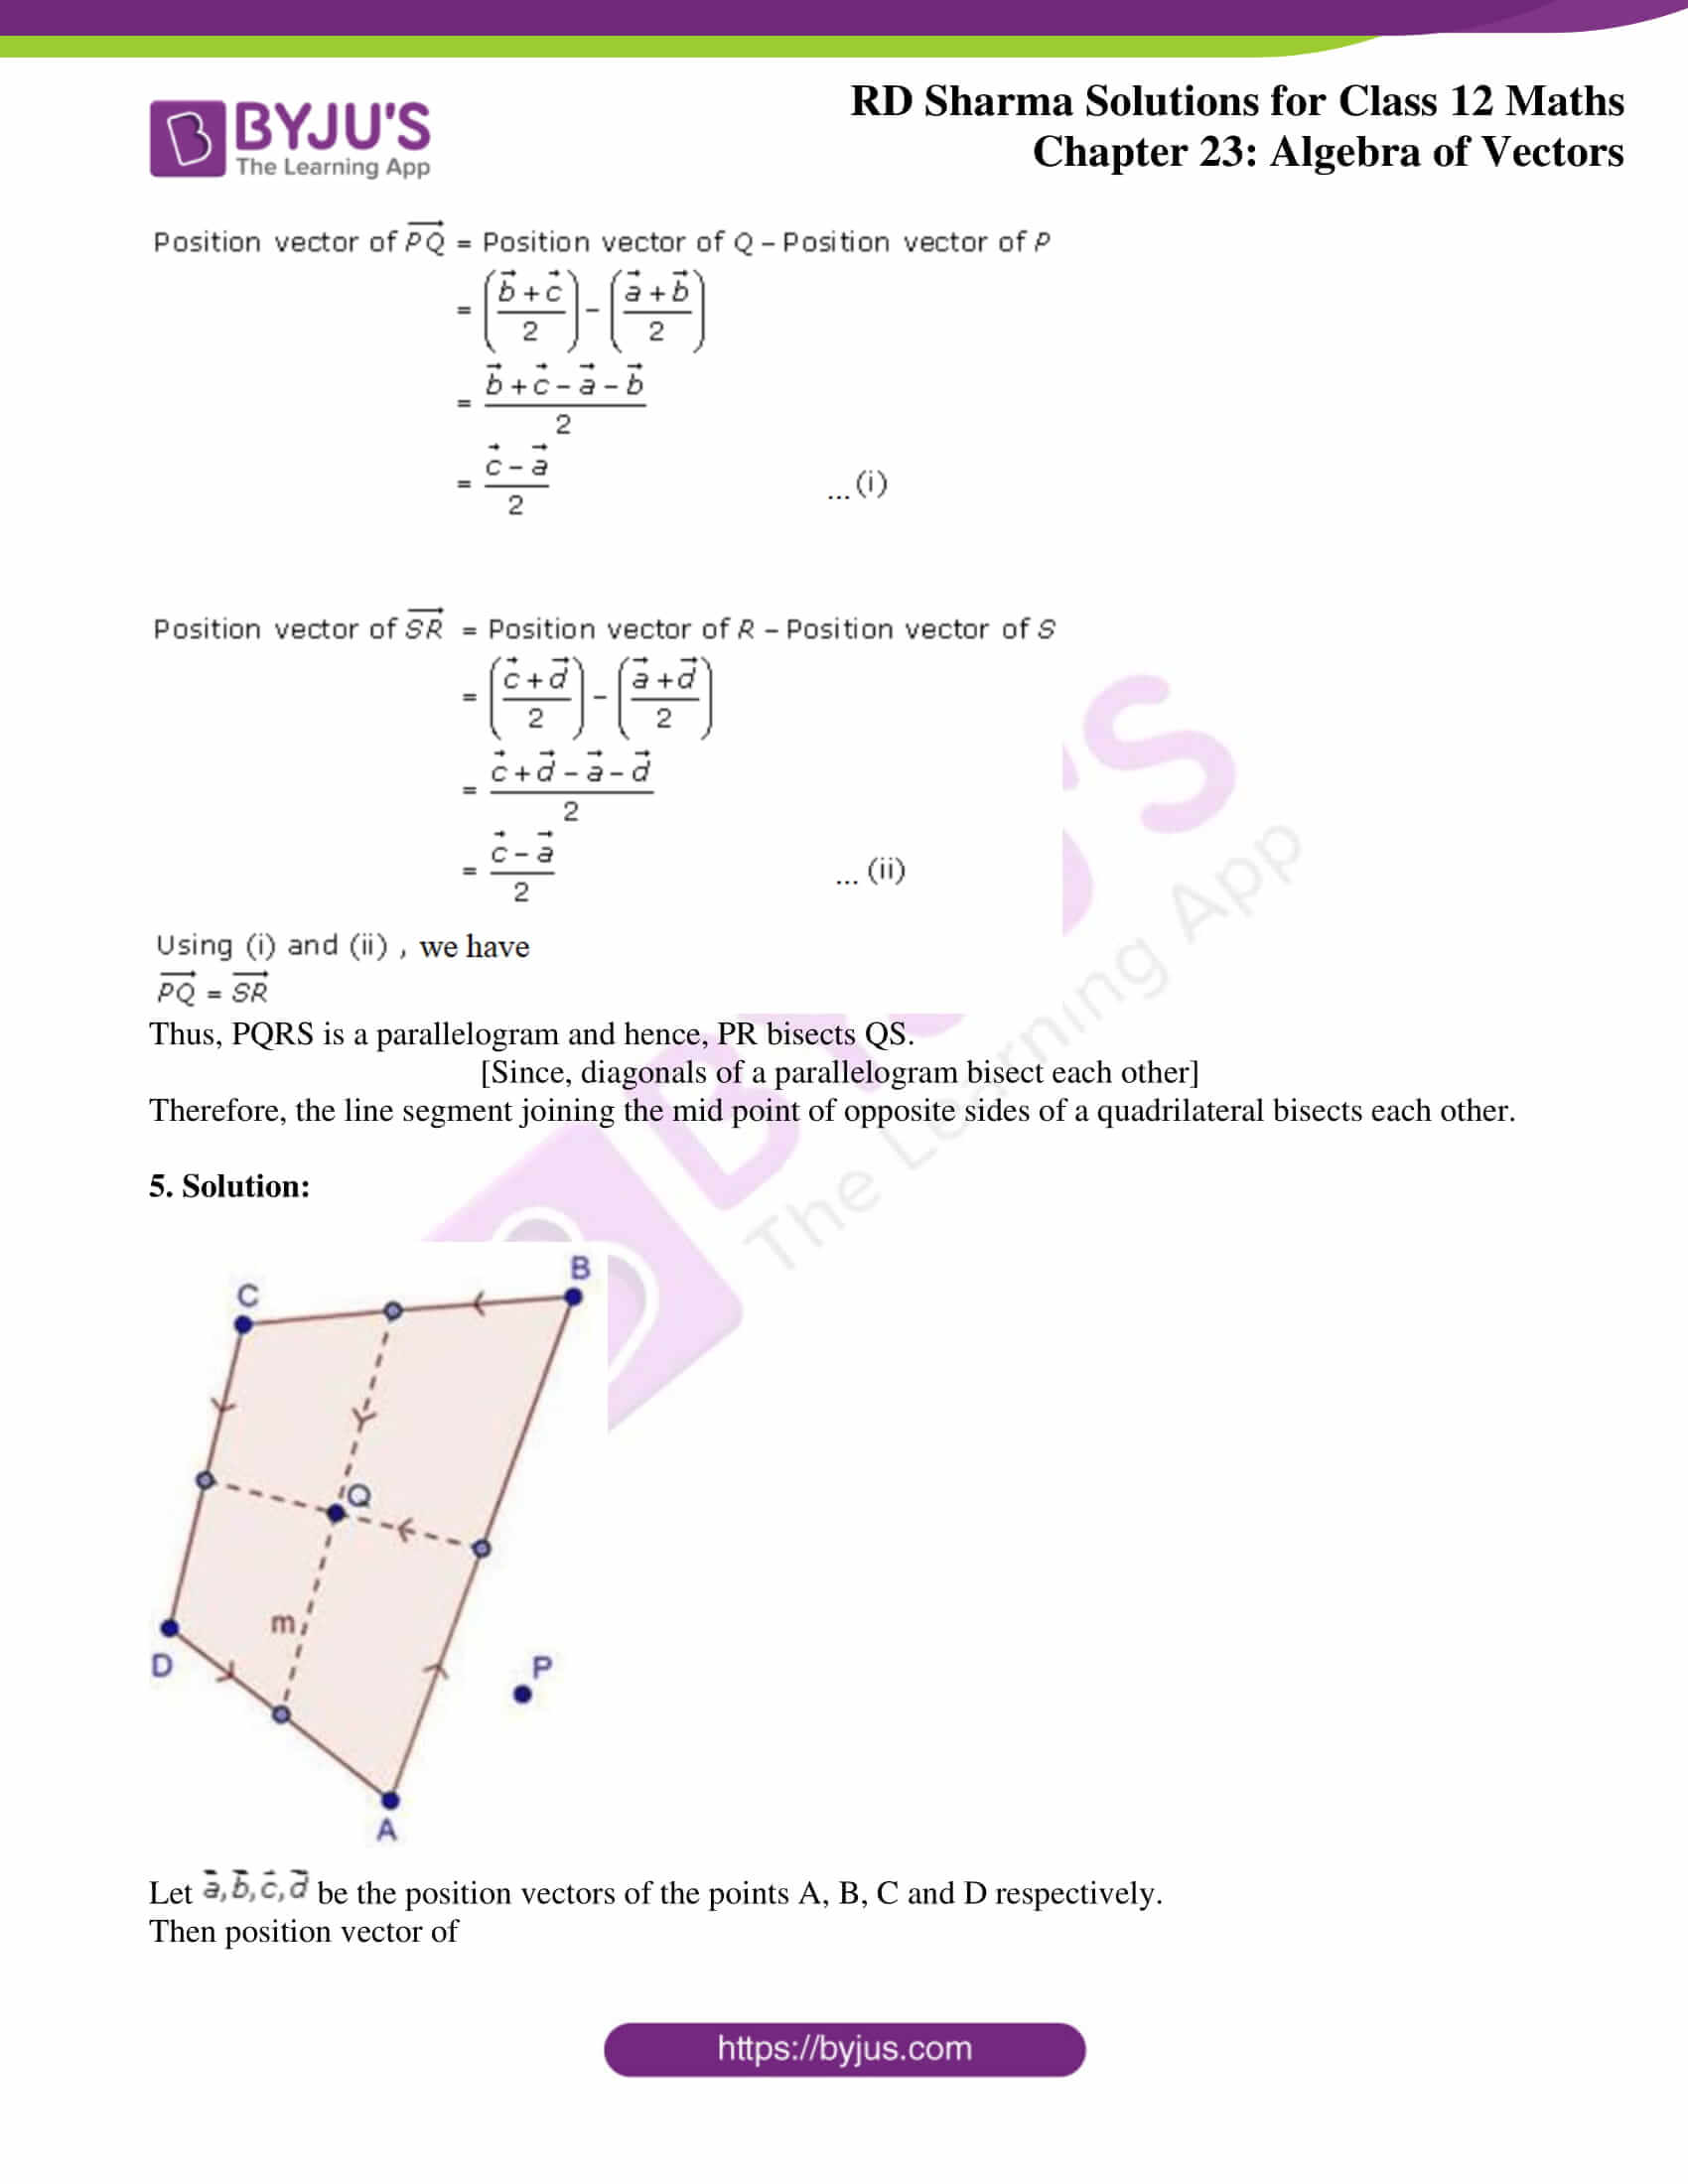 rd sharma class 12 solution for maths chapter 23 ex 4 4